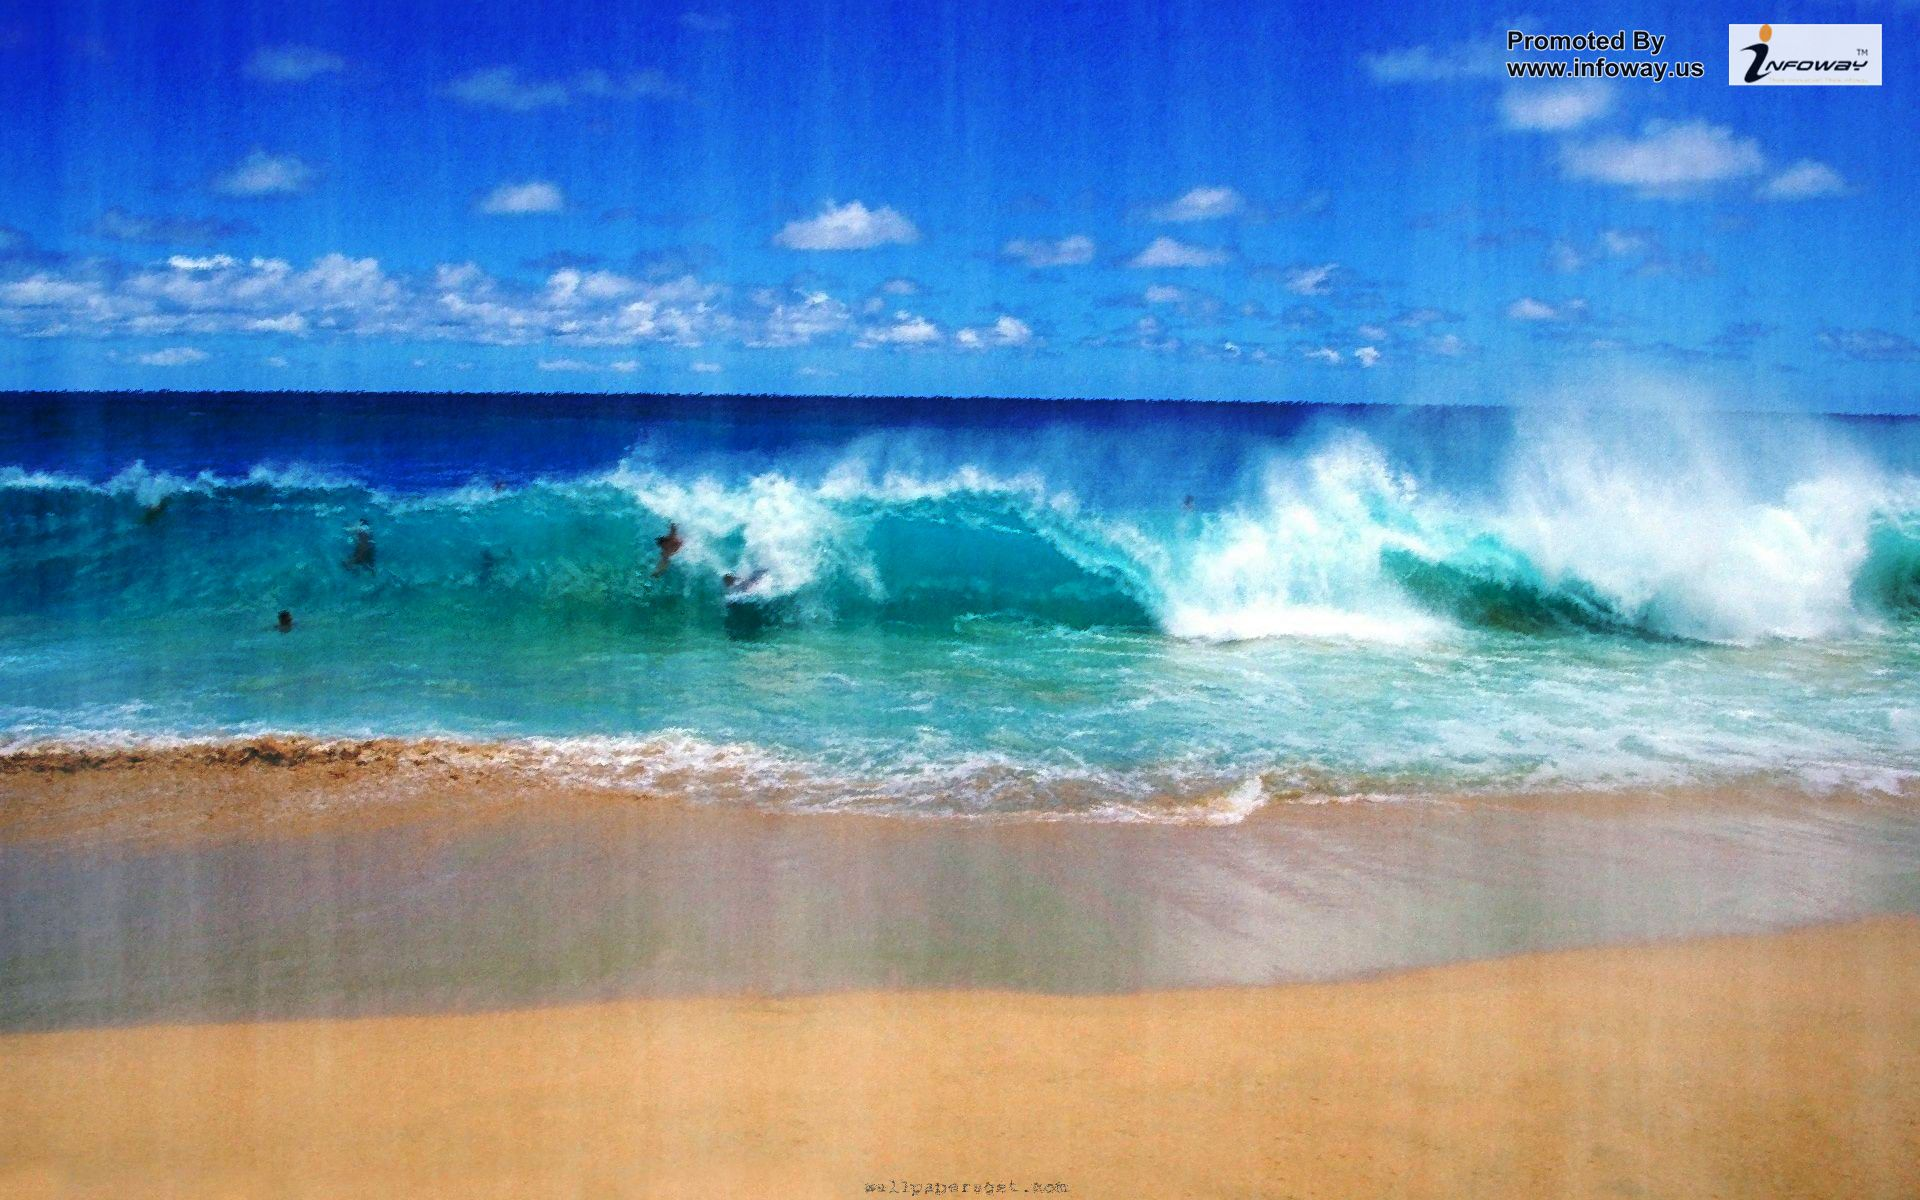 ocean surf swimming beautiful scenery hd wallpapers beautiful ocean 1920x1200